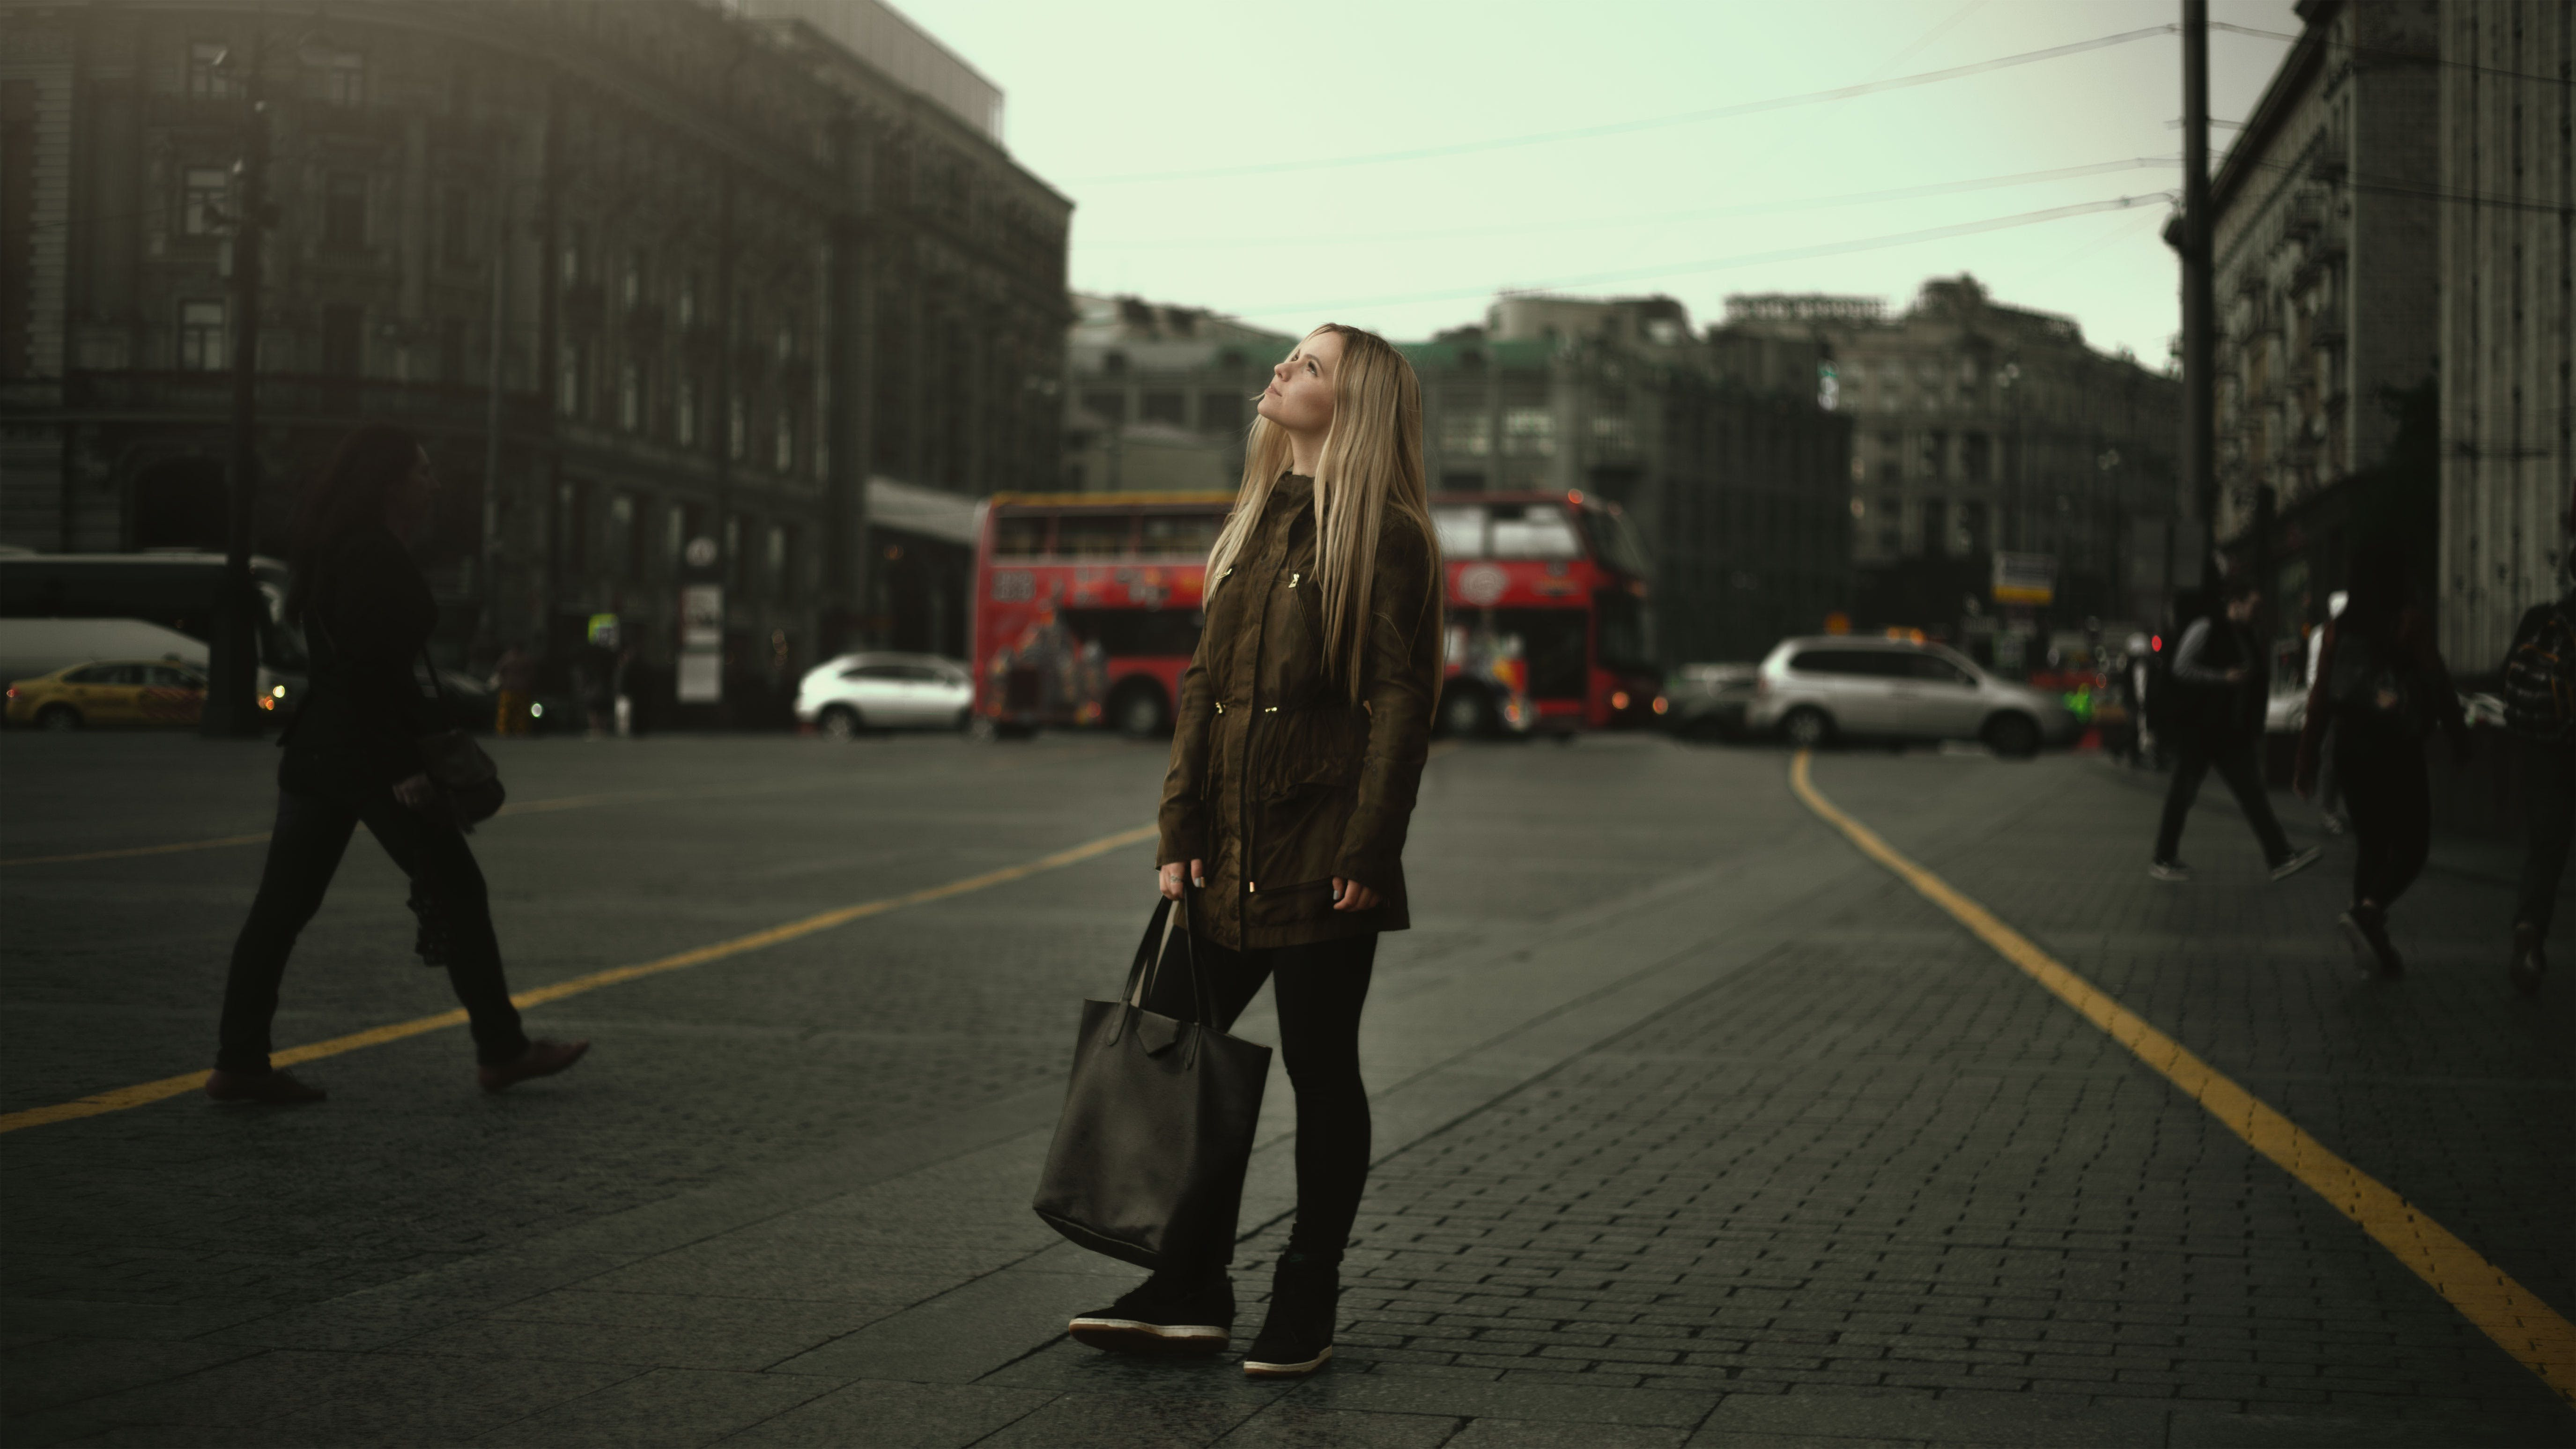 Free stock photo of city, road, fashion, person